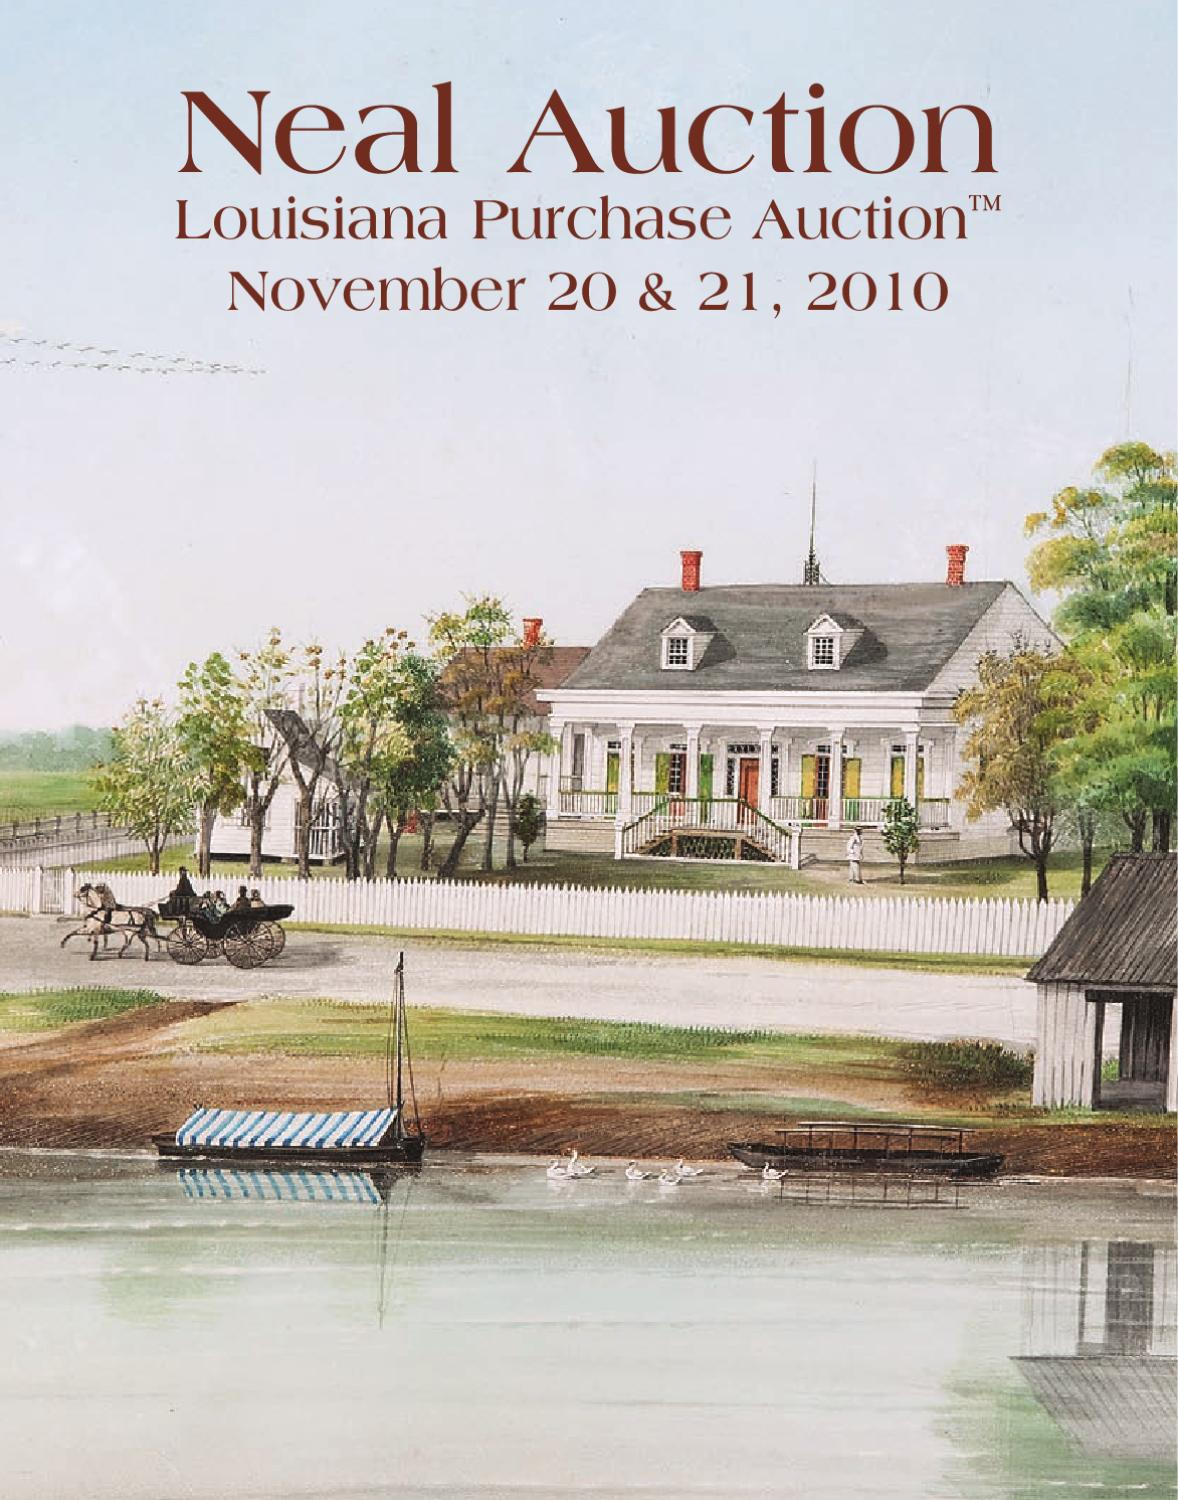 Auction company 751 walnut victorian marble top parlor table ca 1870 - Neal Auction Louisiana Purchase Auction Nov 20 21 By Neal Auction Issuu